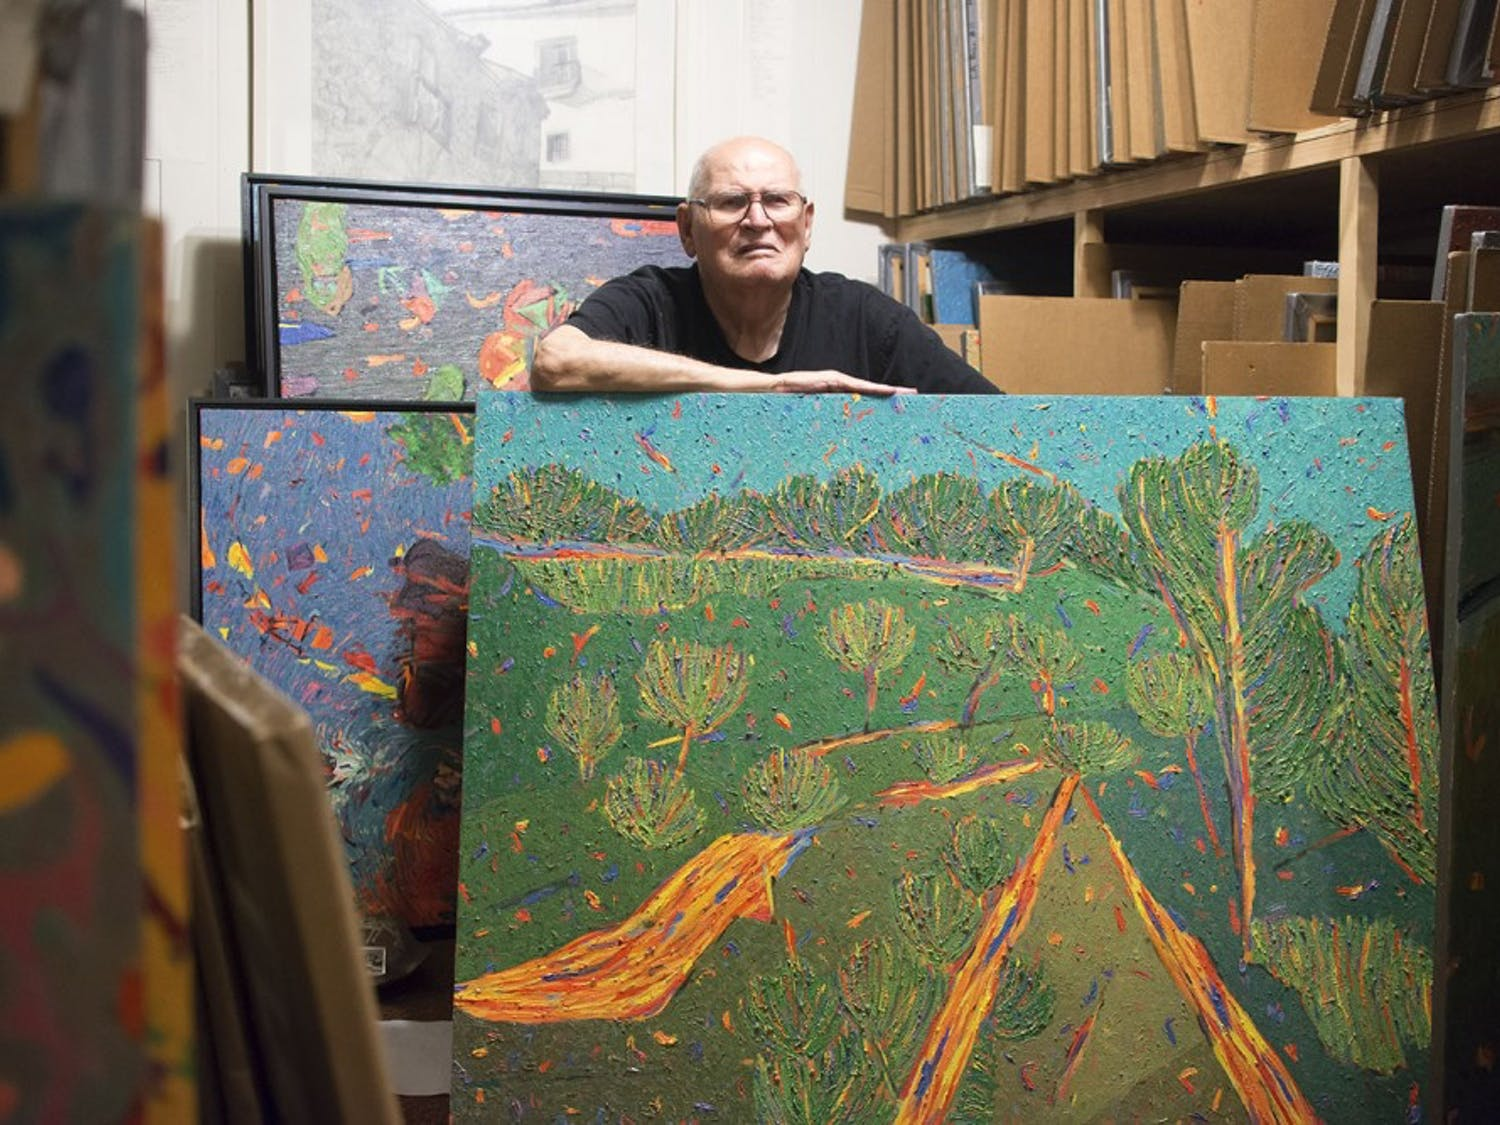 """Marvin Saltzman poses with his artwork in his studio, located in Chapel Hill on July 22nd. A small portion of Saltzman's thousands of pieces is currently on display in the Eno Gallery in Hillsboro. """"I draw from nature, and then I paint about nature.""""""""Bad teachers train, good teachers open doors."""""""